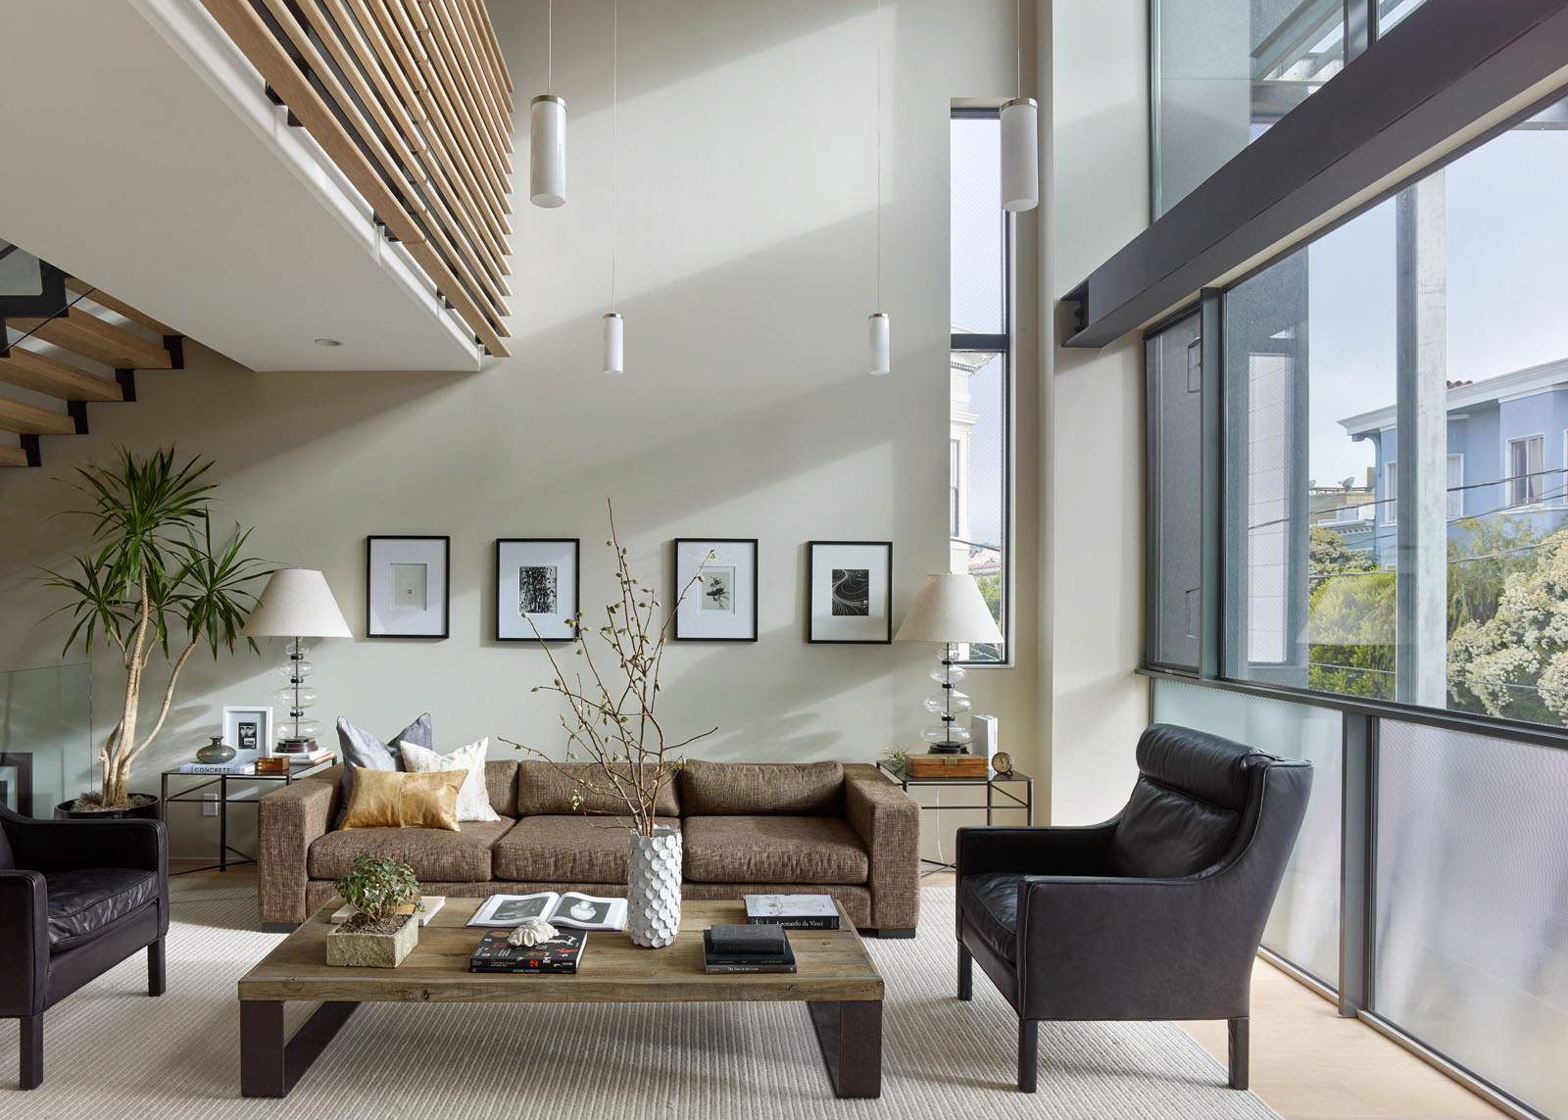 Albion by Kennerly Architecture